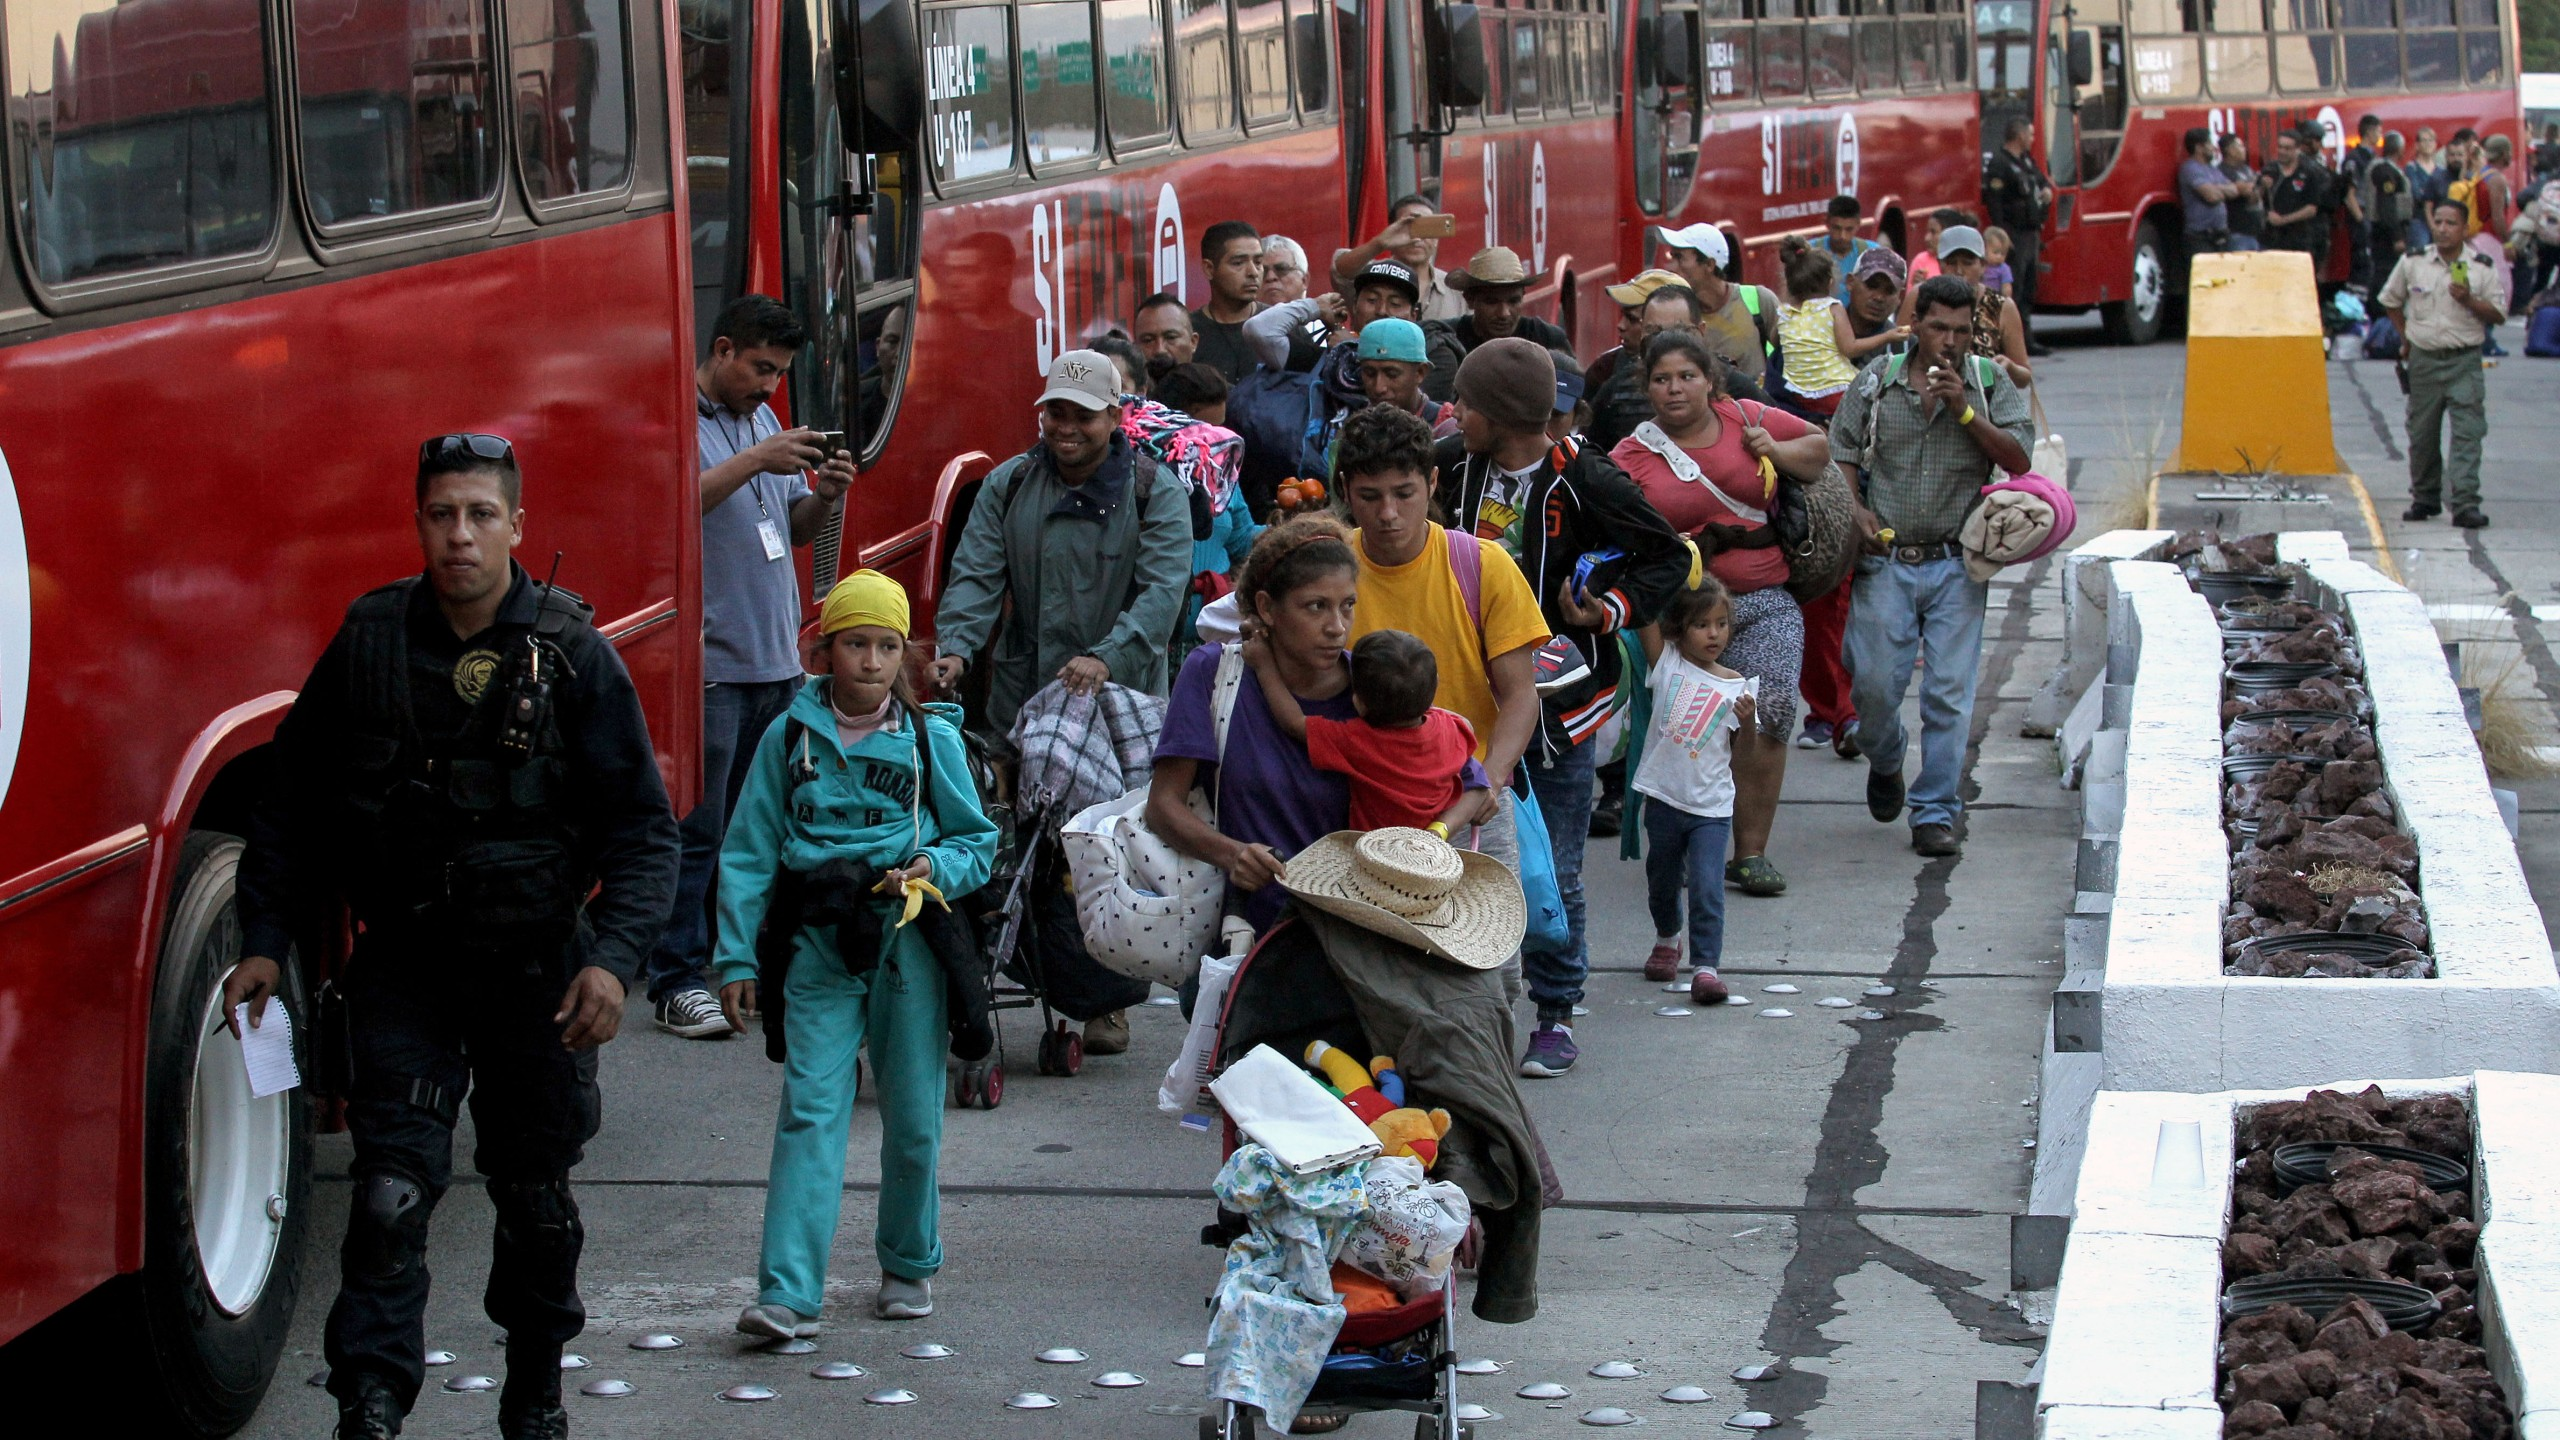 Central American migrants -mostly Hondurans- moving in a caravan towards the United States, board buses to head to a shelter in the outskirts of Zapotlanejo, Jalisco state, Mexico, on Nov. 11, 2018. (Credit: Ulises Ruiz/AFP/Getty Images)